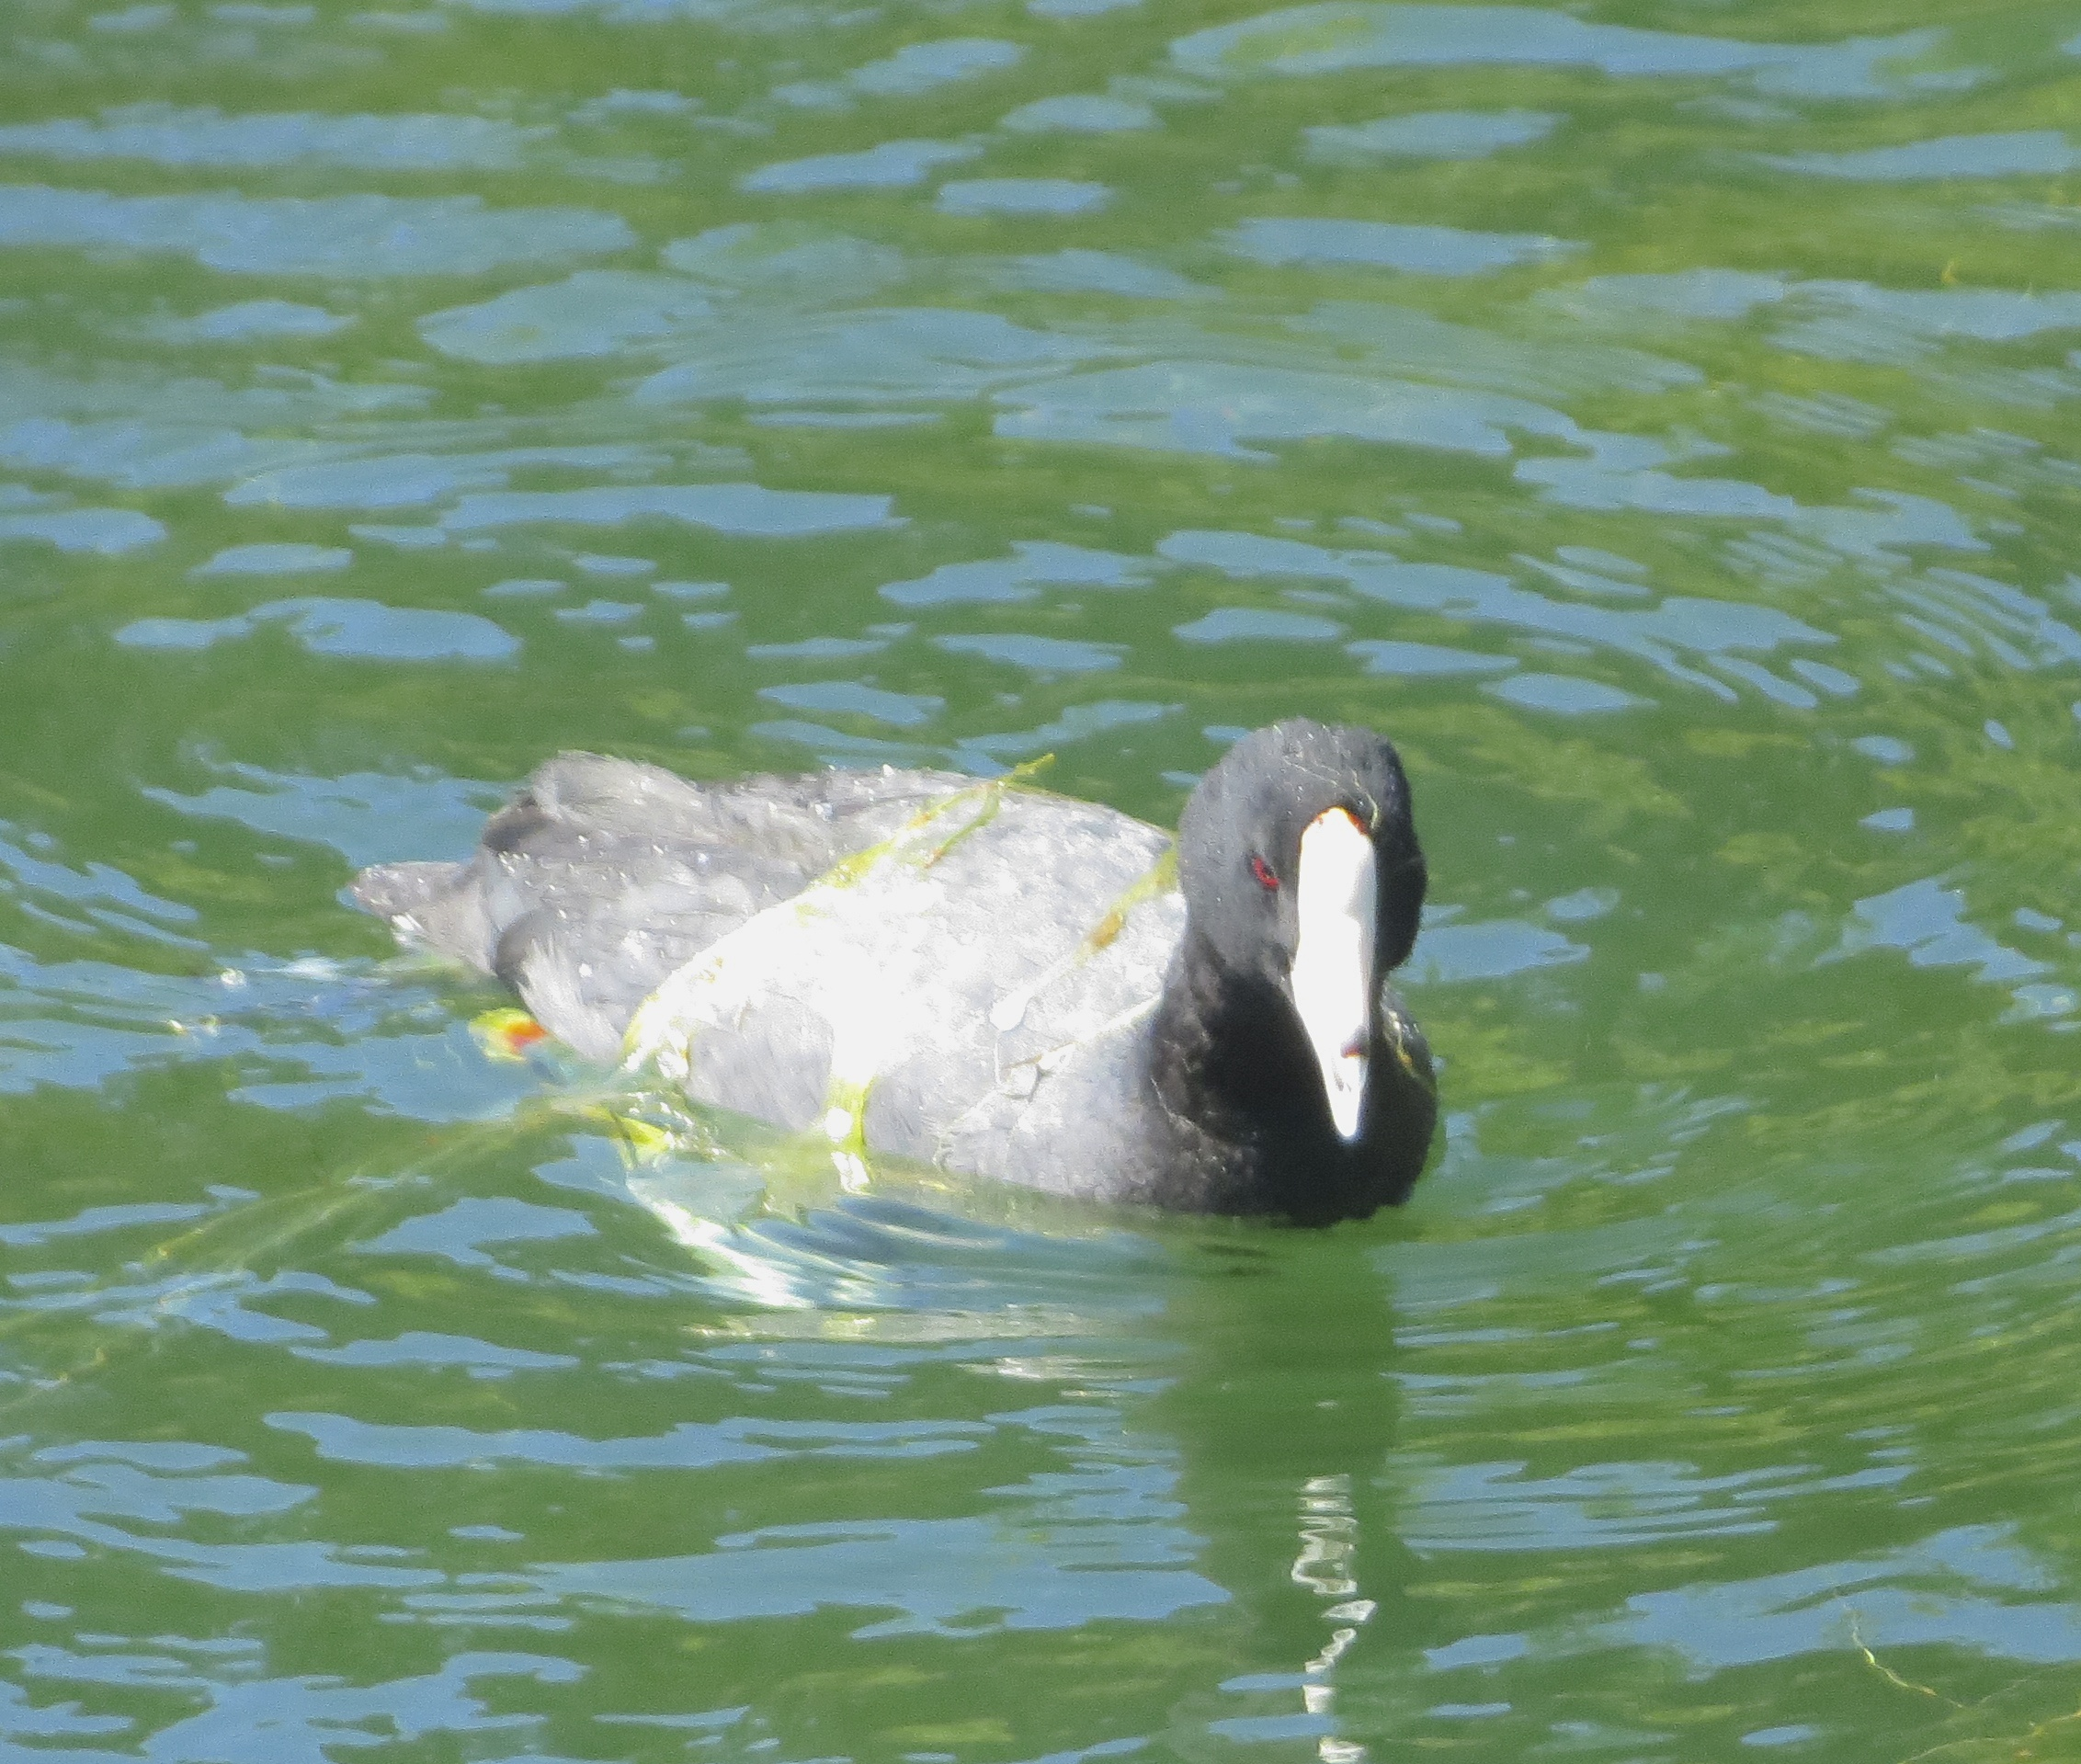 Adult American Coot